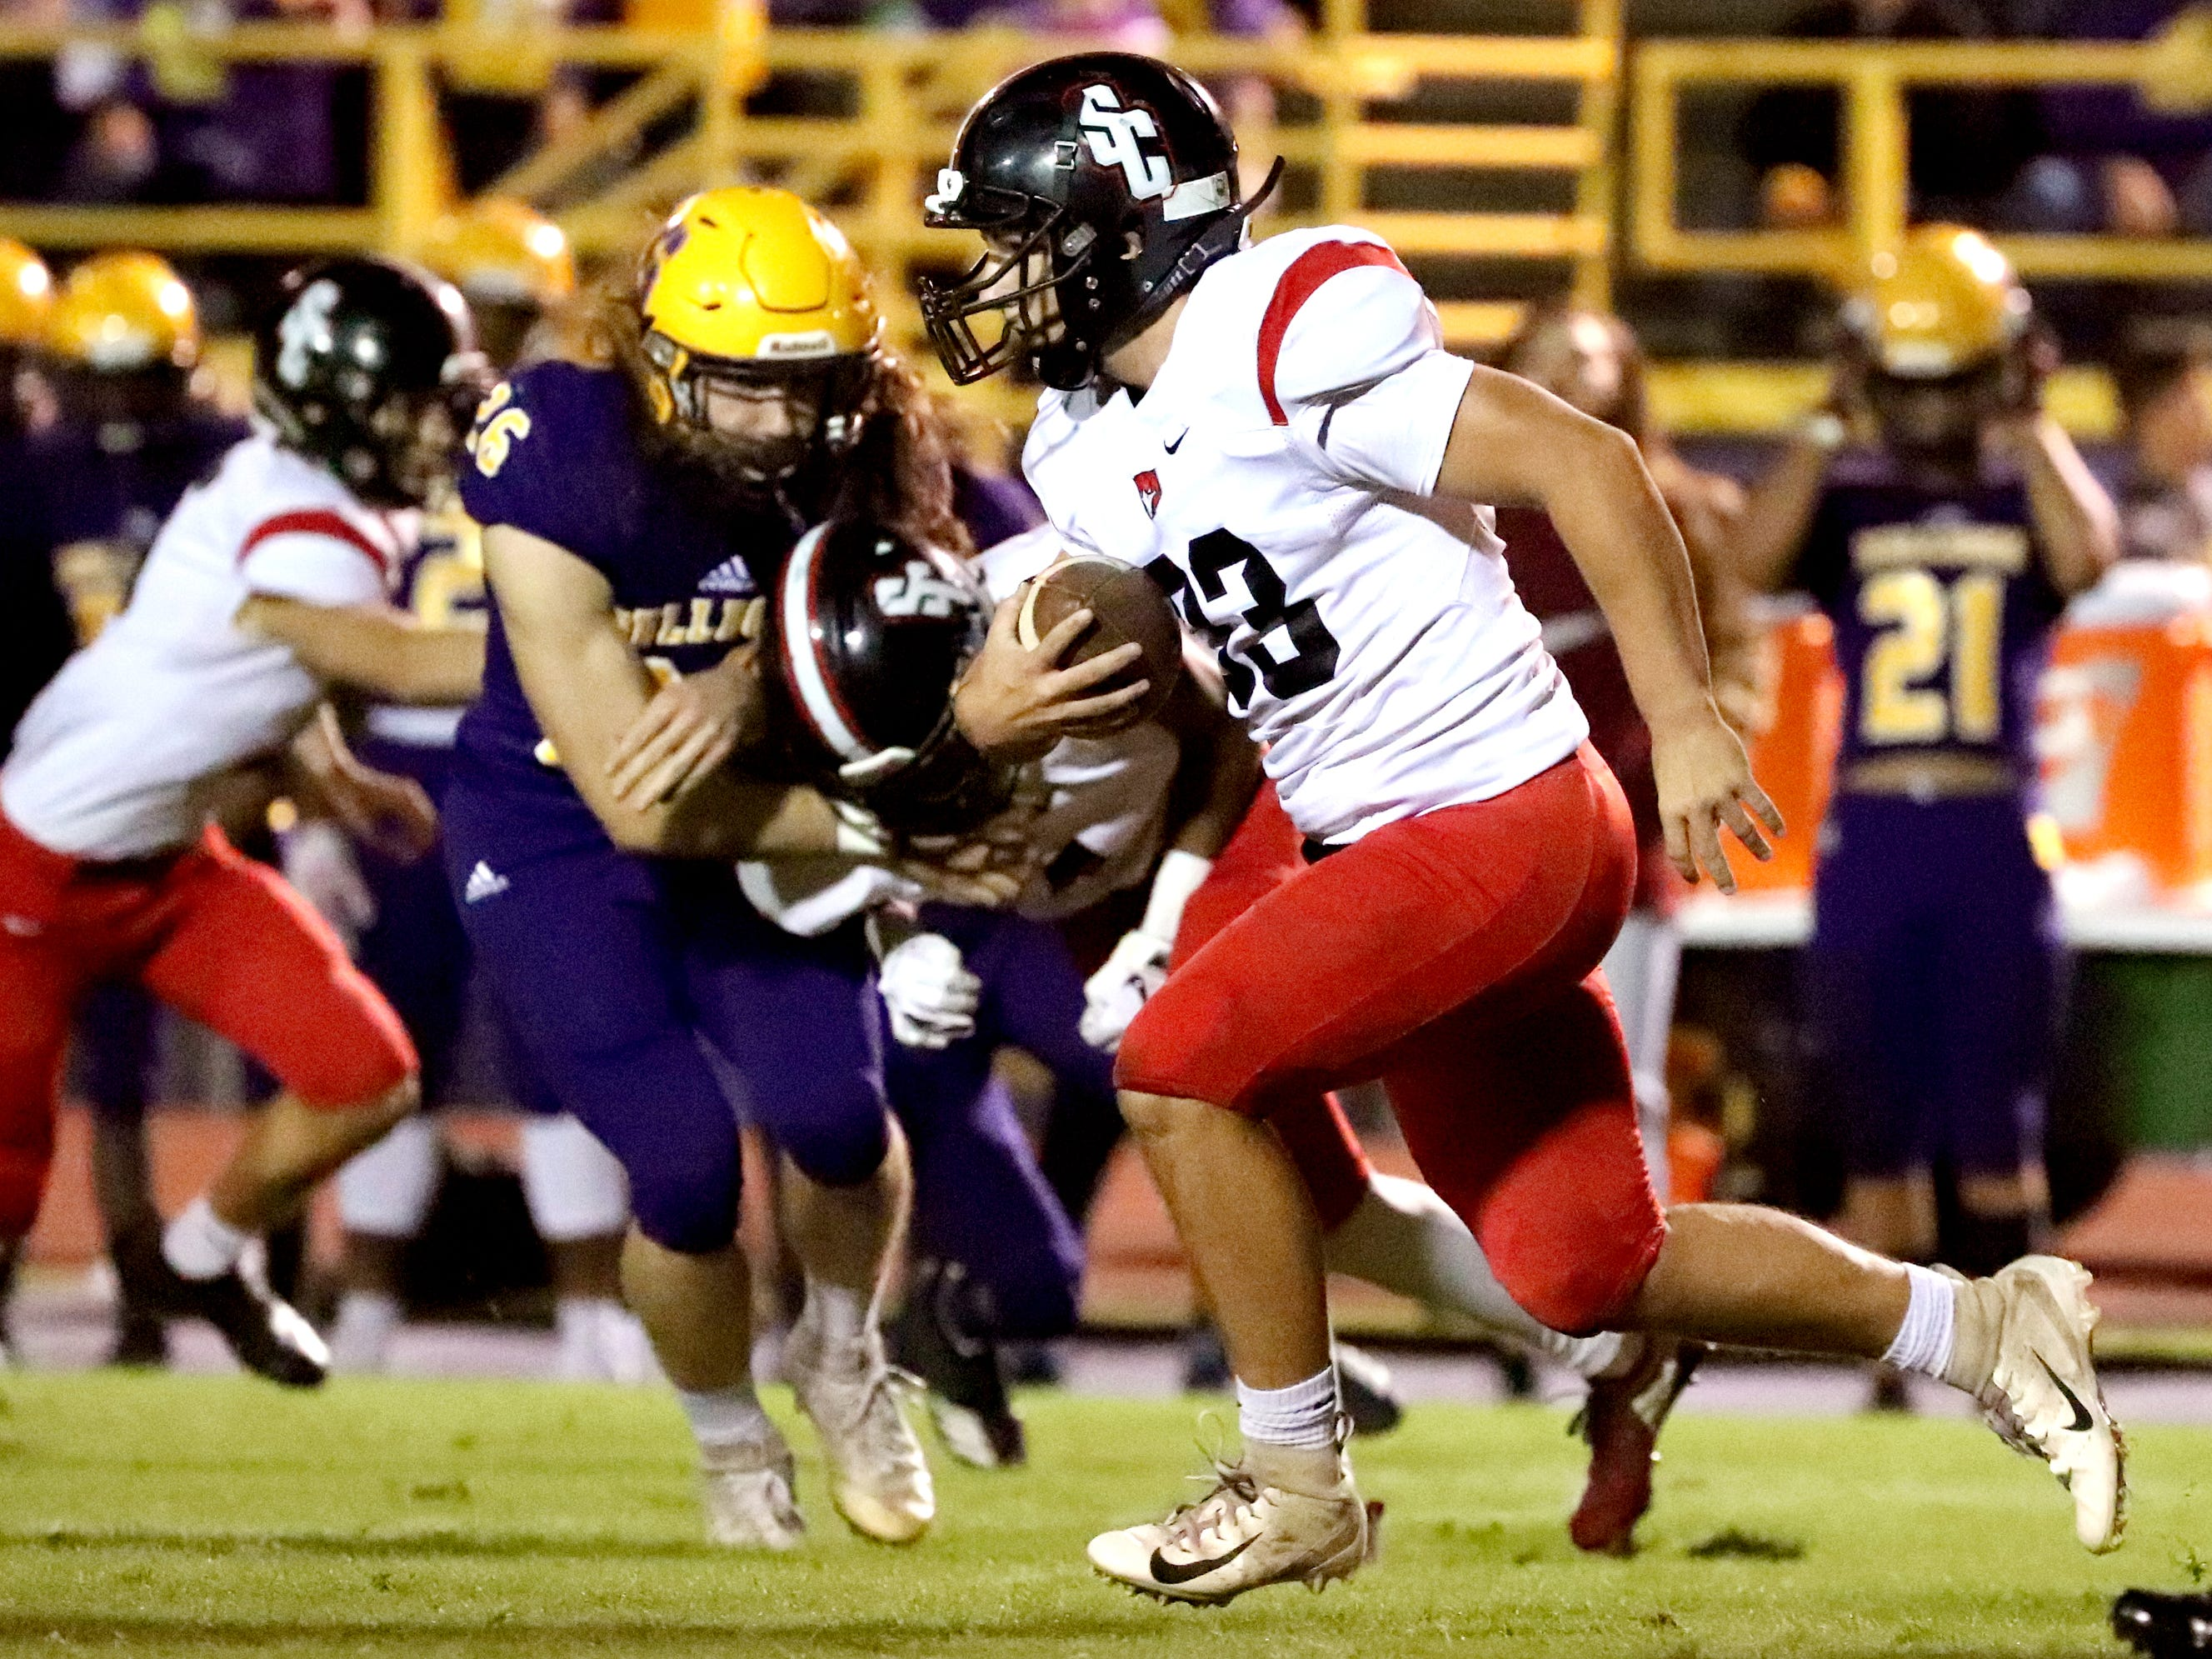 Stewarts Creek's Bryce Haven (33) runs the ball against Smyrna at Smyrna High School on Friday, Oct. 12, 2018.